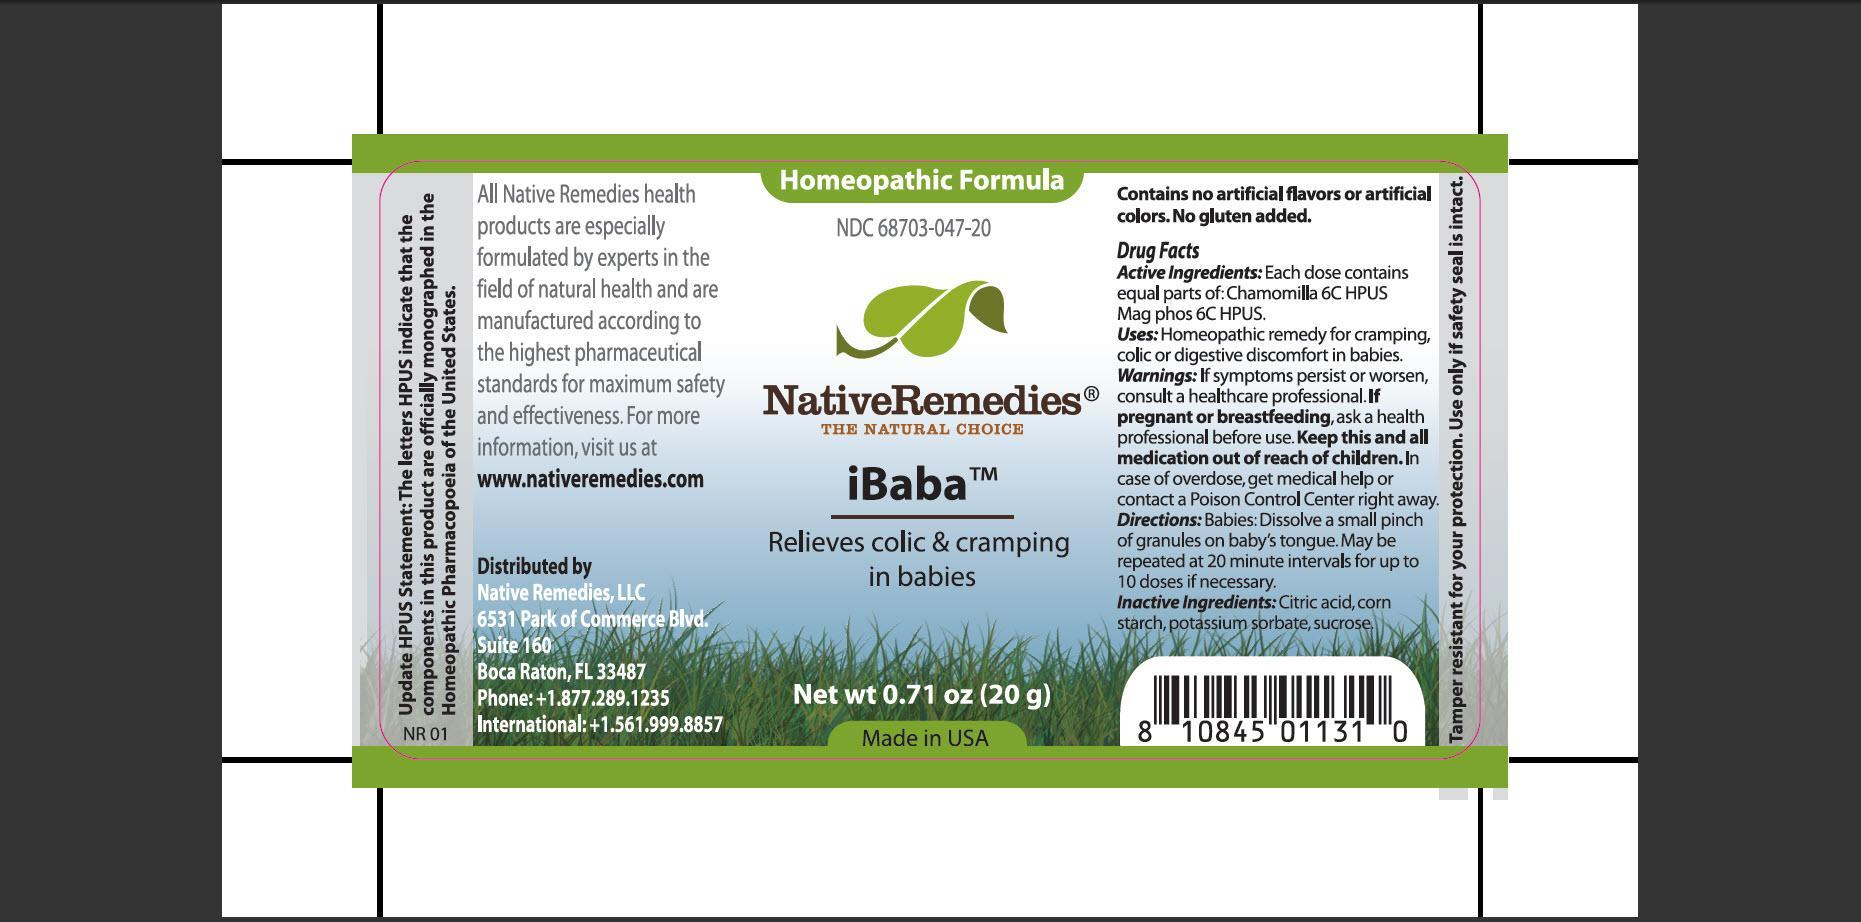 Ibaba (Chamomilla, Mag Phos) Granule [Native Remedies, Llc]